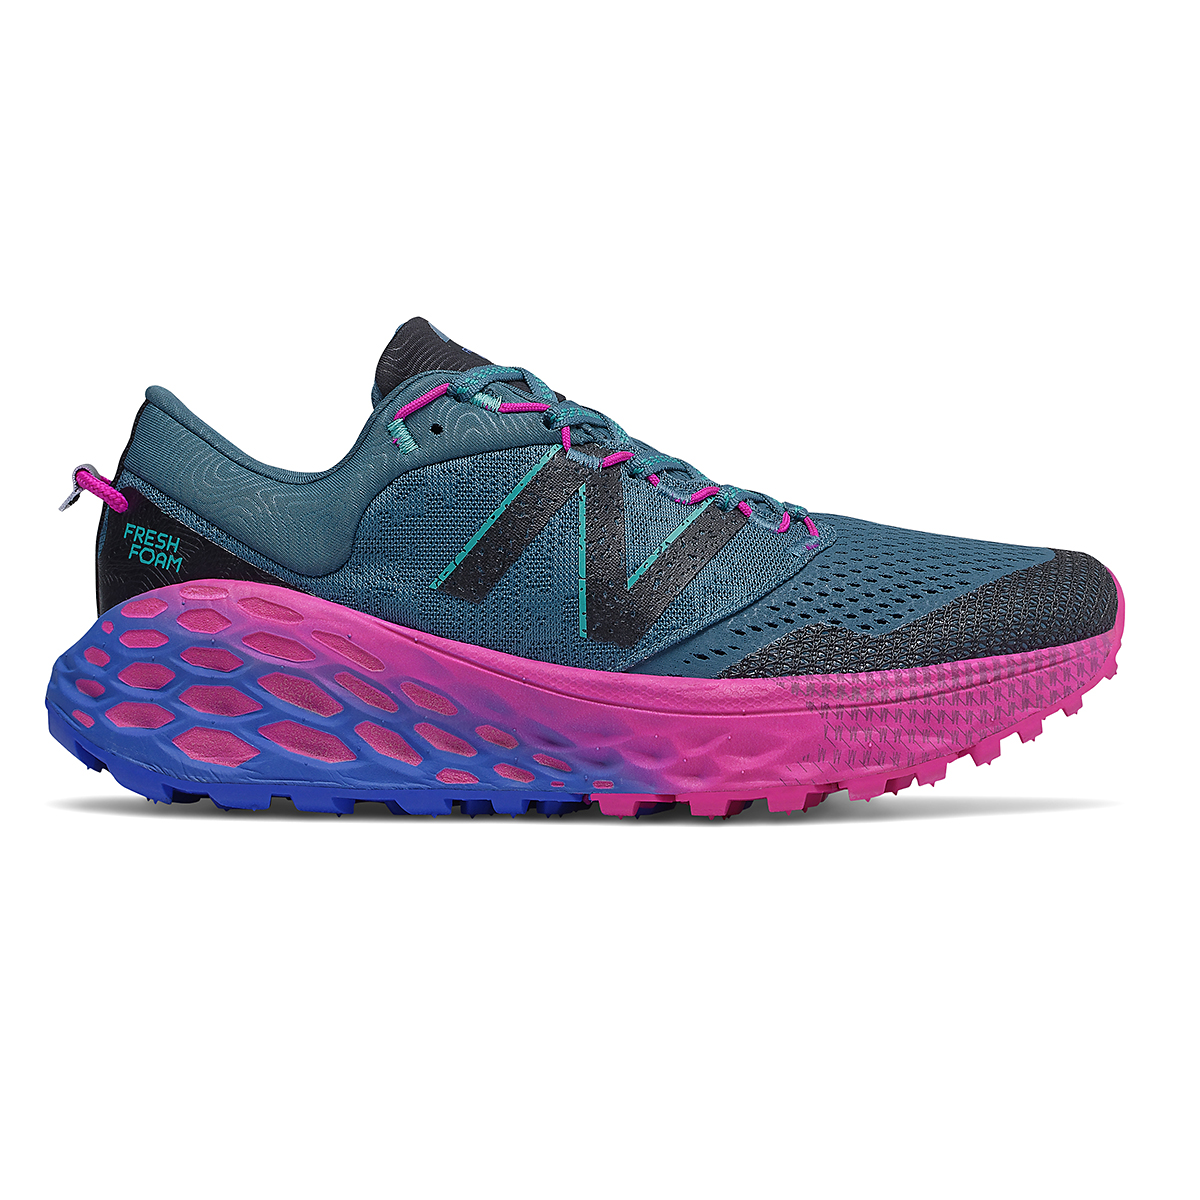 Women's New Balance Fresh Foam More Trail V1 Running Shoe - Color: Jet Stream - Size: 5.5 - Width: Extra Wide, Jet Stream, large, image 1